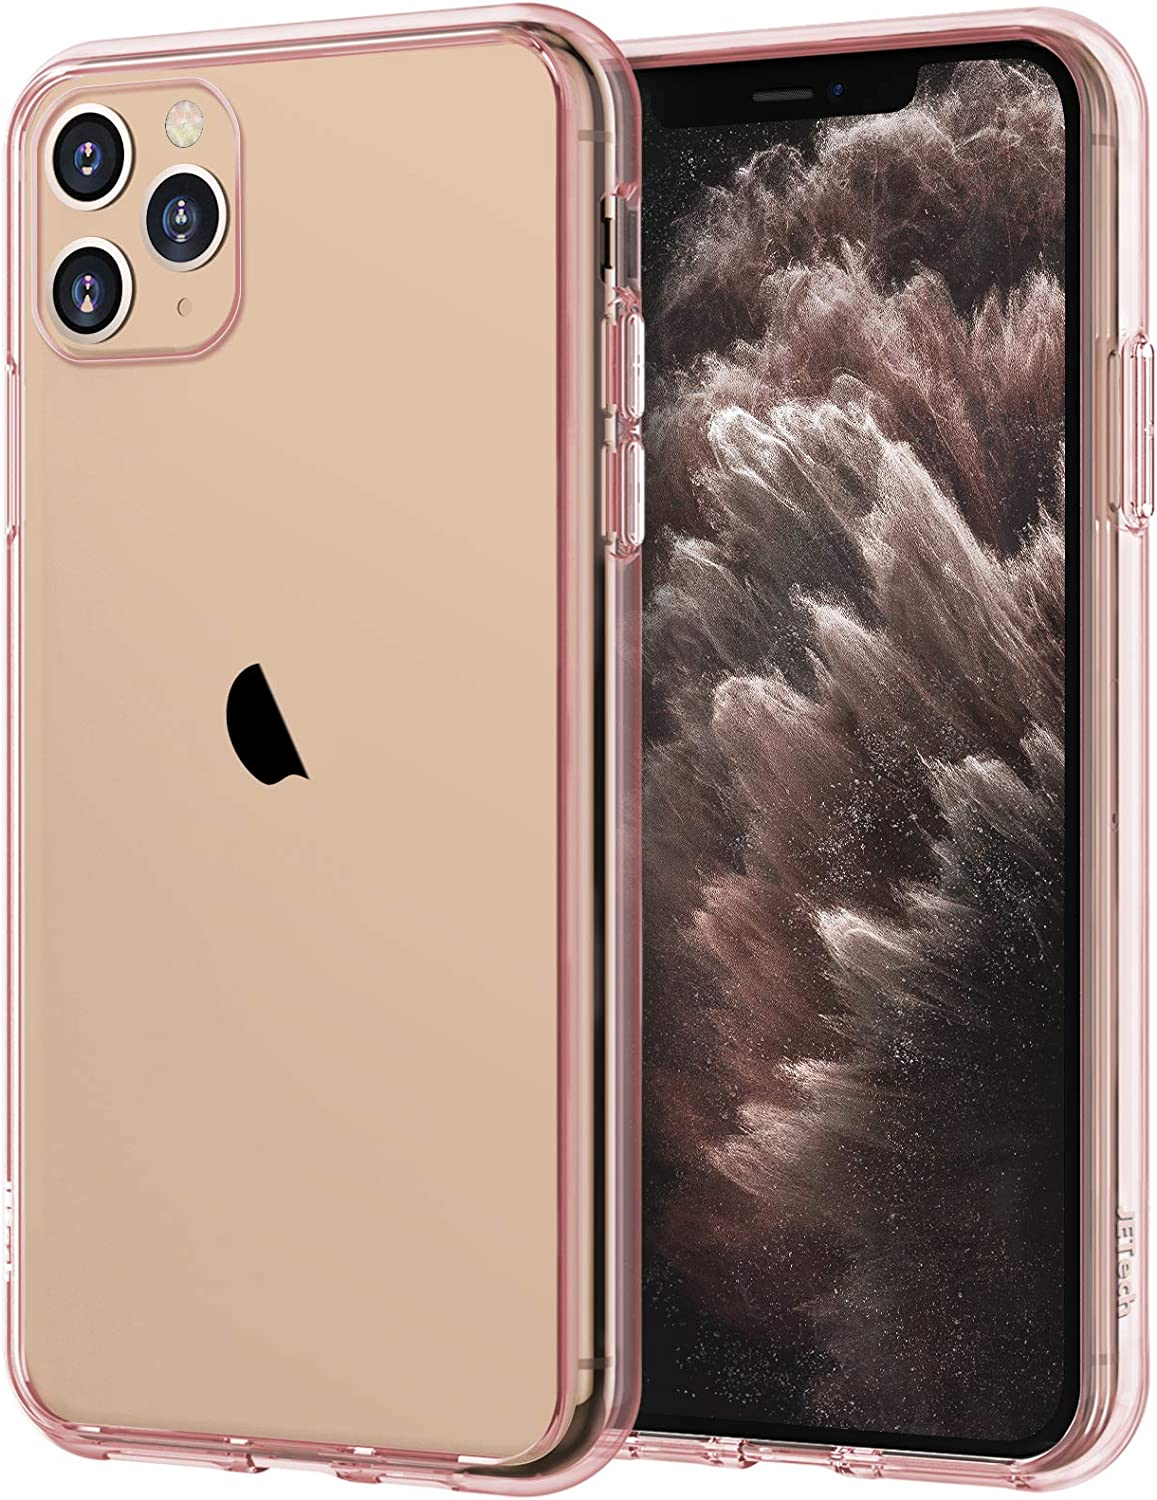 JETech Case for iPhone 11 Pro Max (2019), 6.5-Inch, Shockproof Bumper Cover, Anti-Scratch Clear Back (Rose Gold)